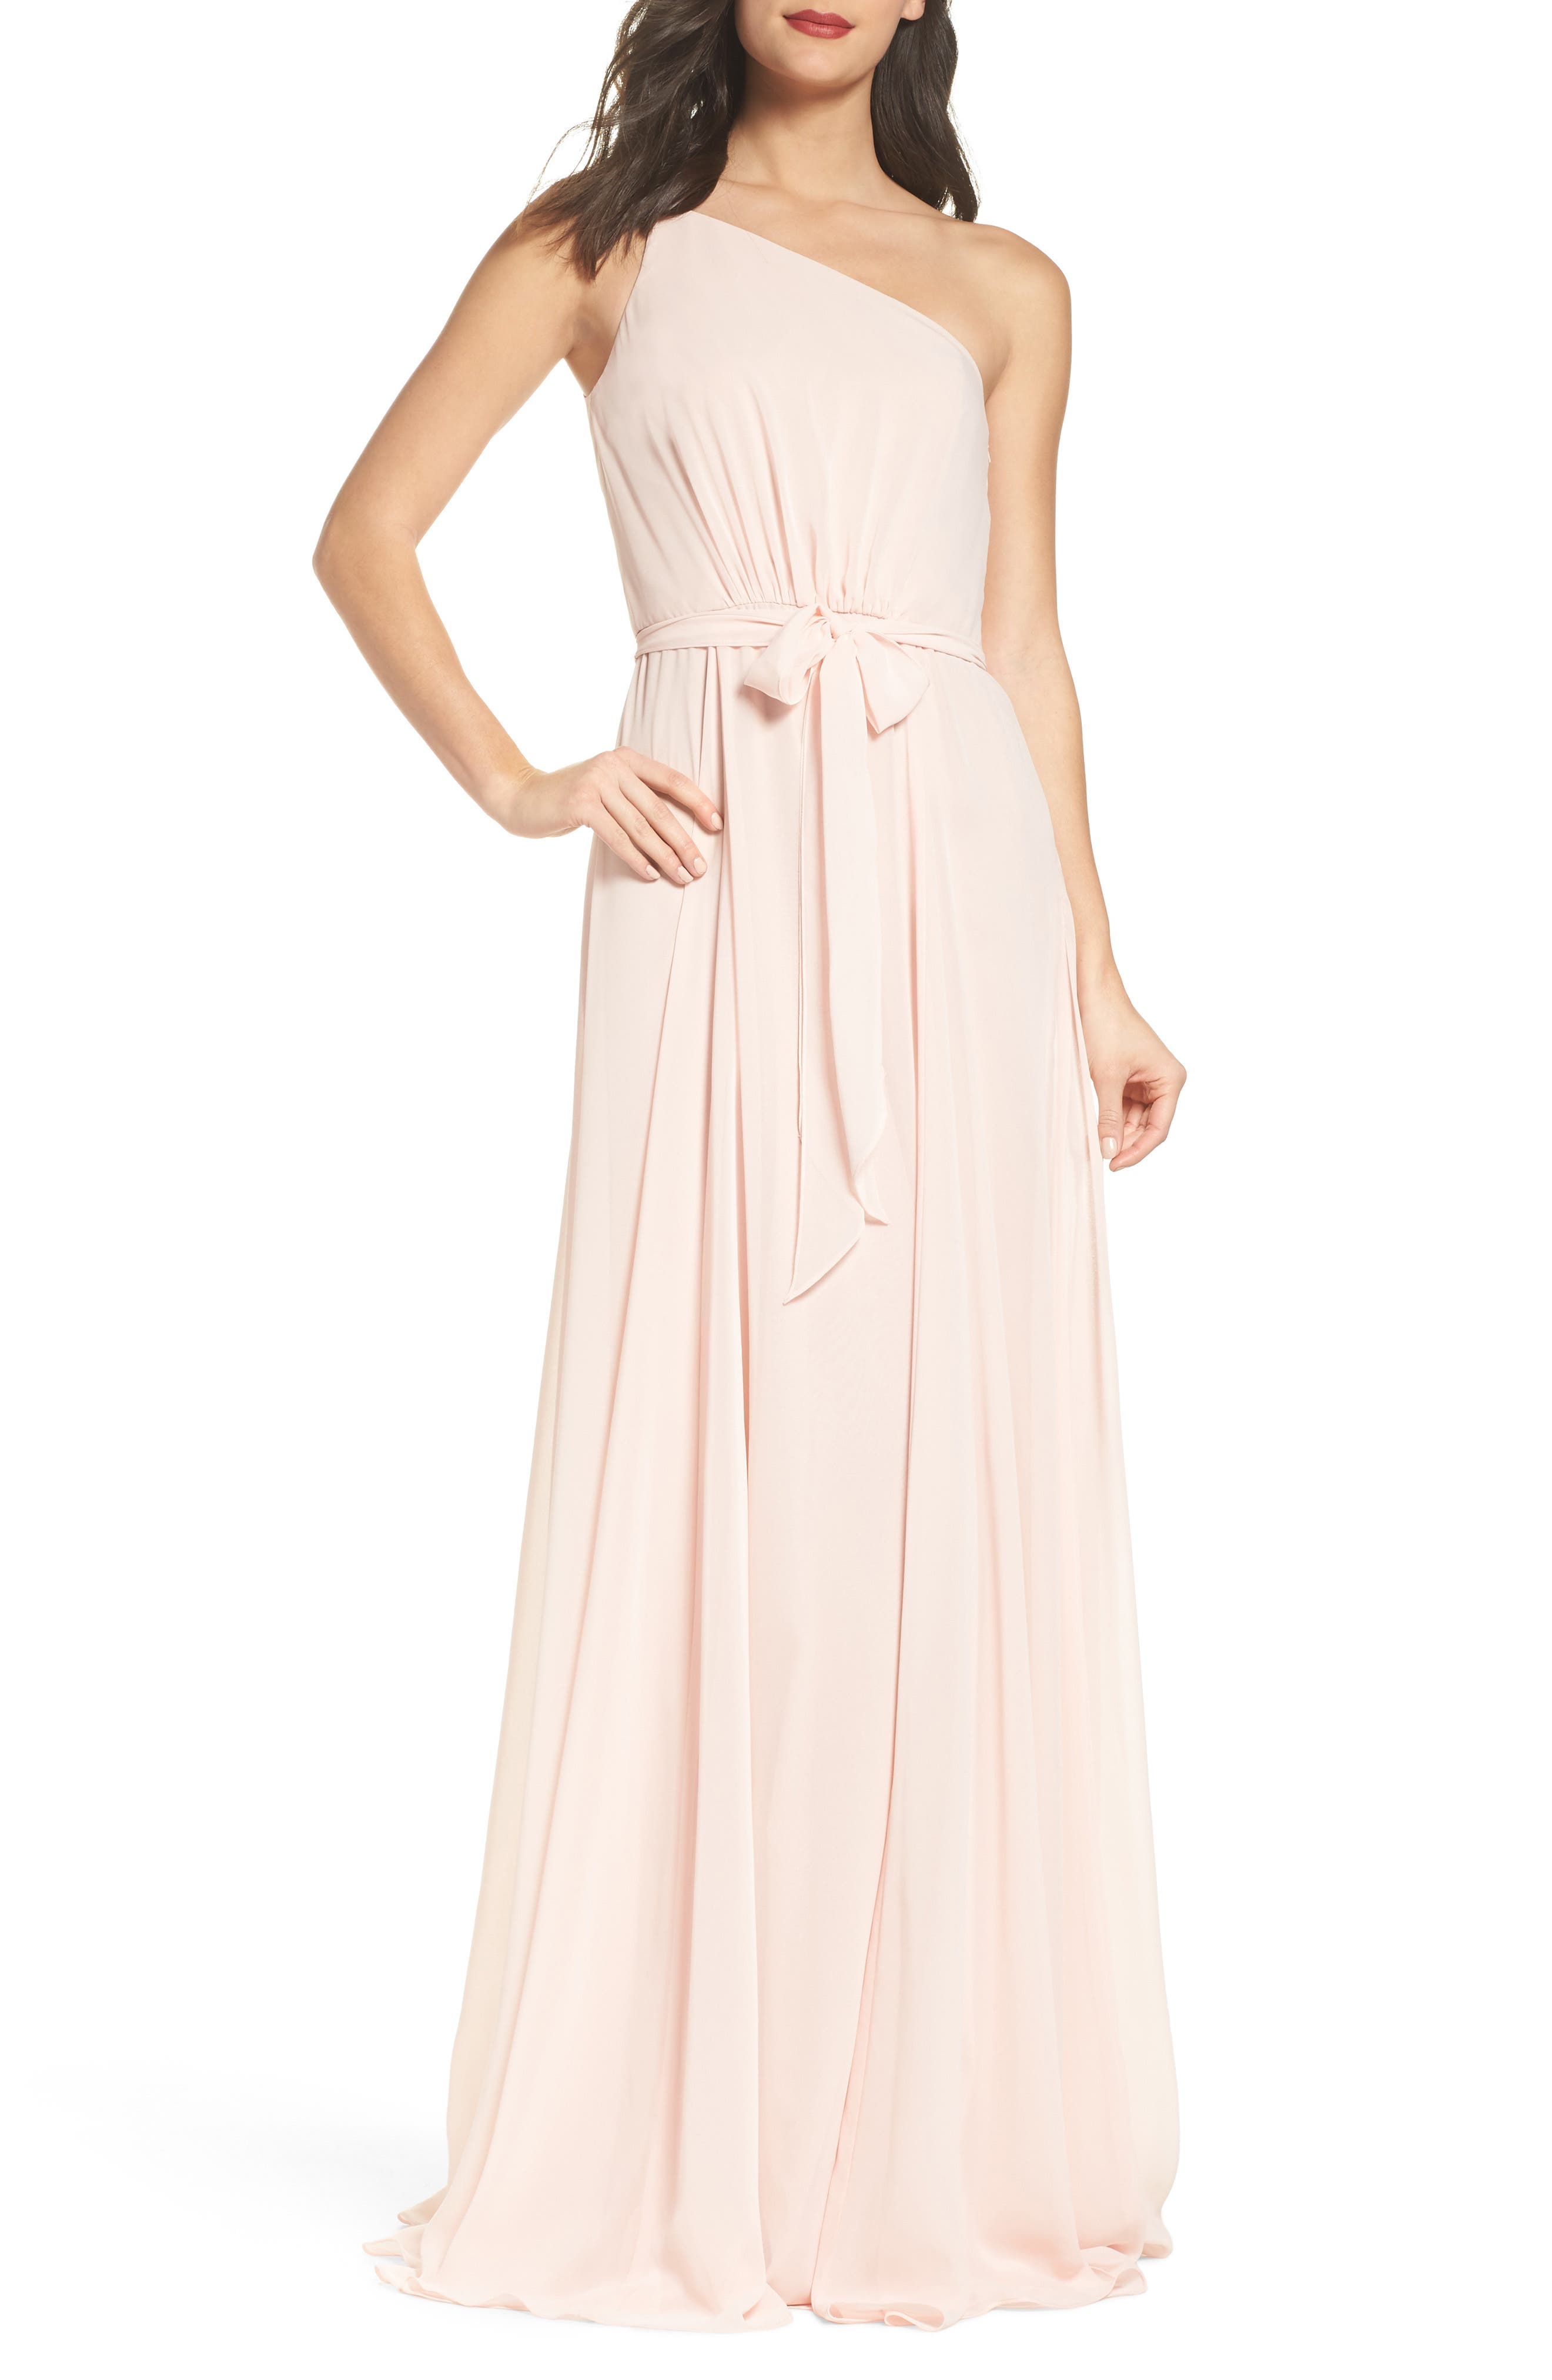 Alternate Image 1 Selected - Amsale One-Shoulder Chiffon A-Line Gown